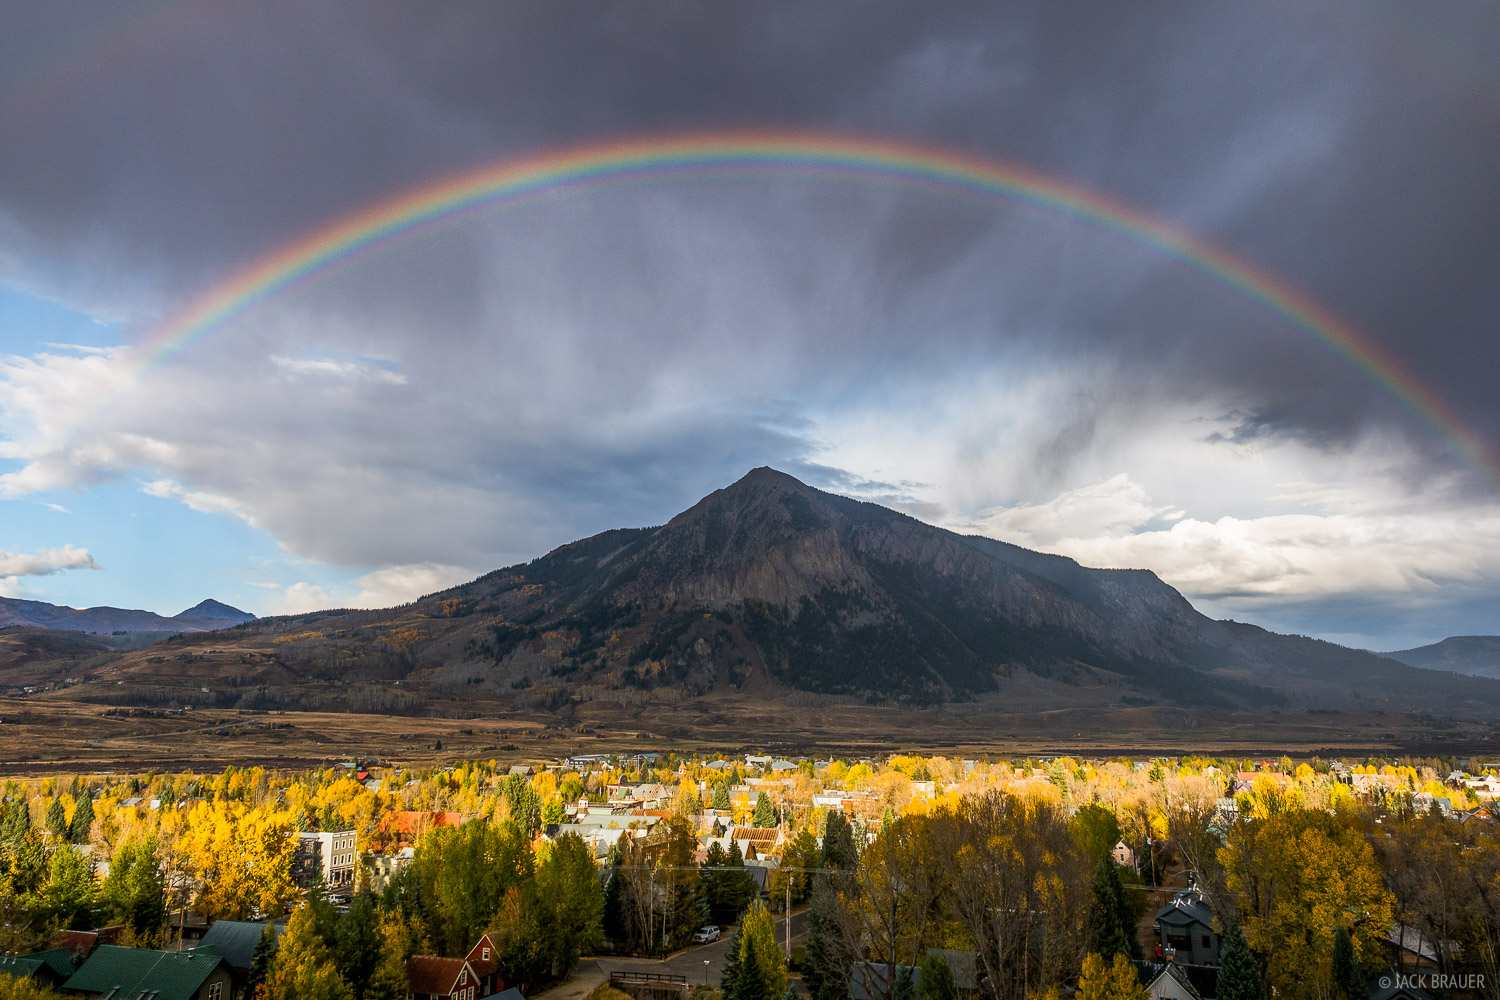 Colorado,Crested Butte,rainbow, October, photo